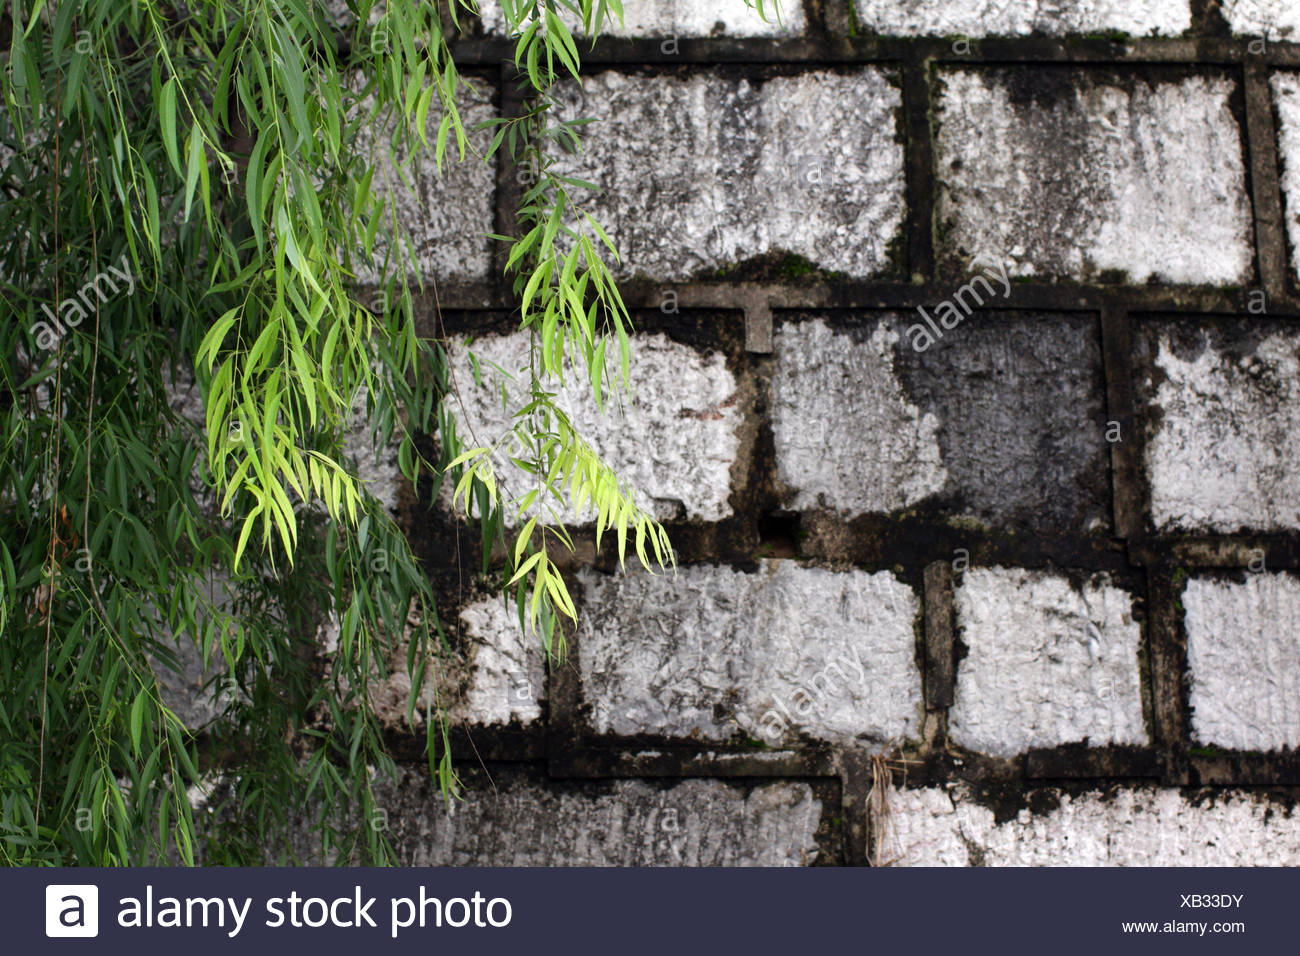 Bright green leaves drape over a brick wall. - Stock Image